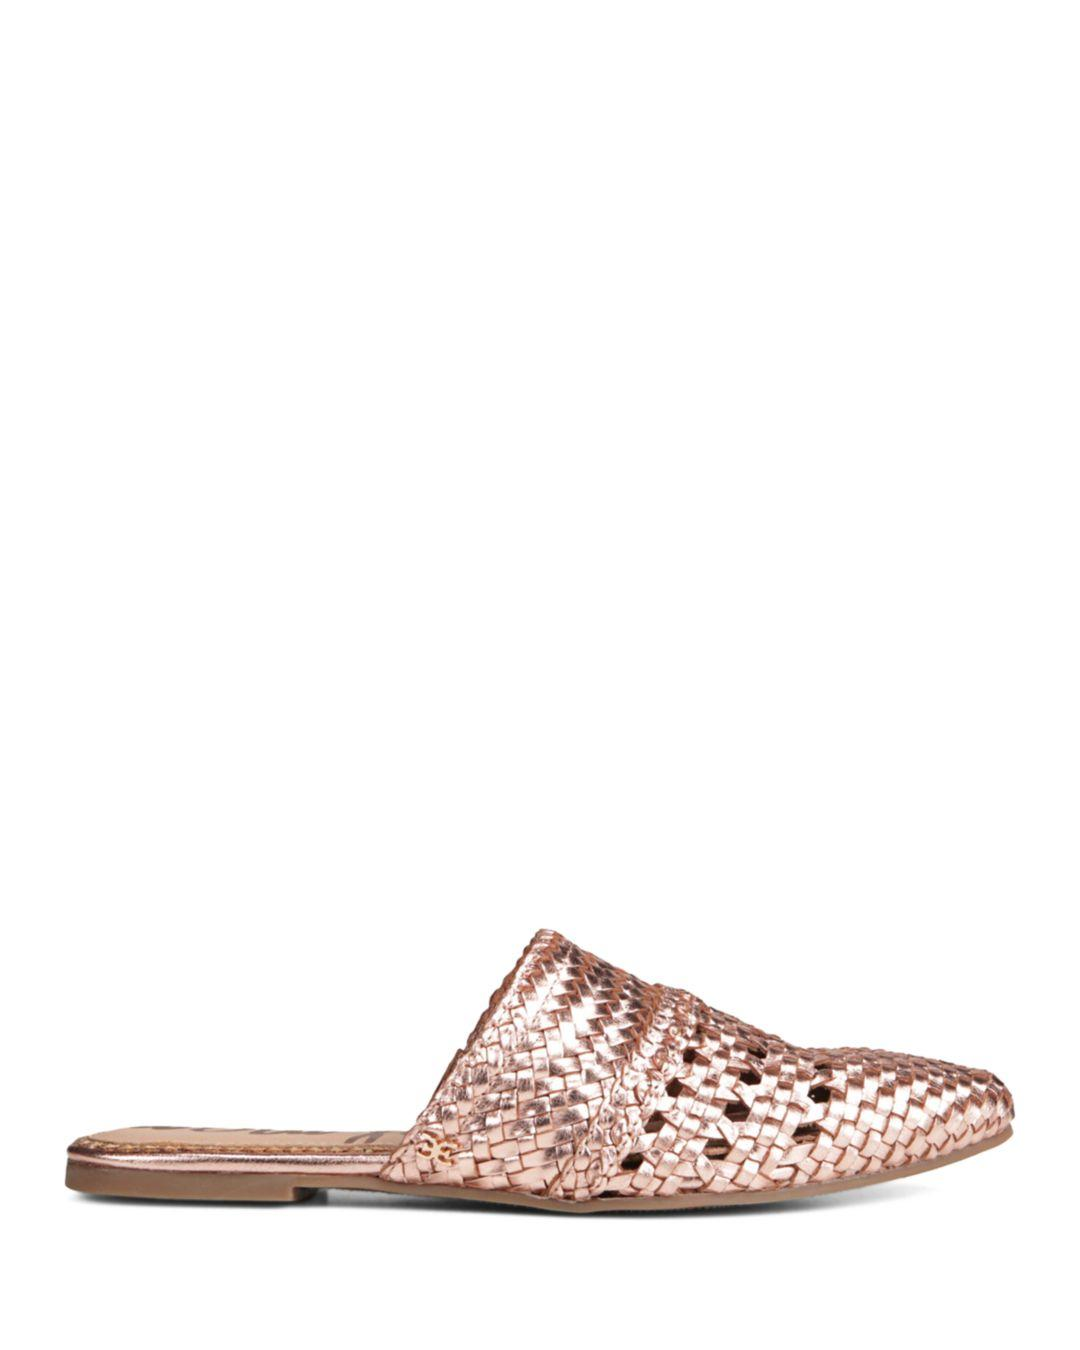 a98b1ac0aa6 Lyst - Sam Edelman Women s Natalya Woven Leather Mules in Pink